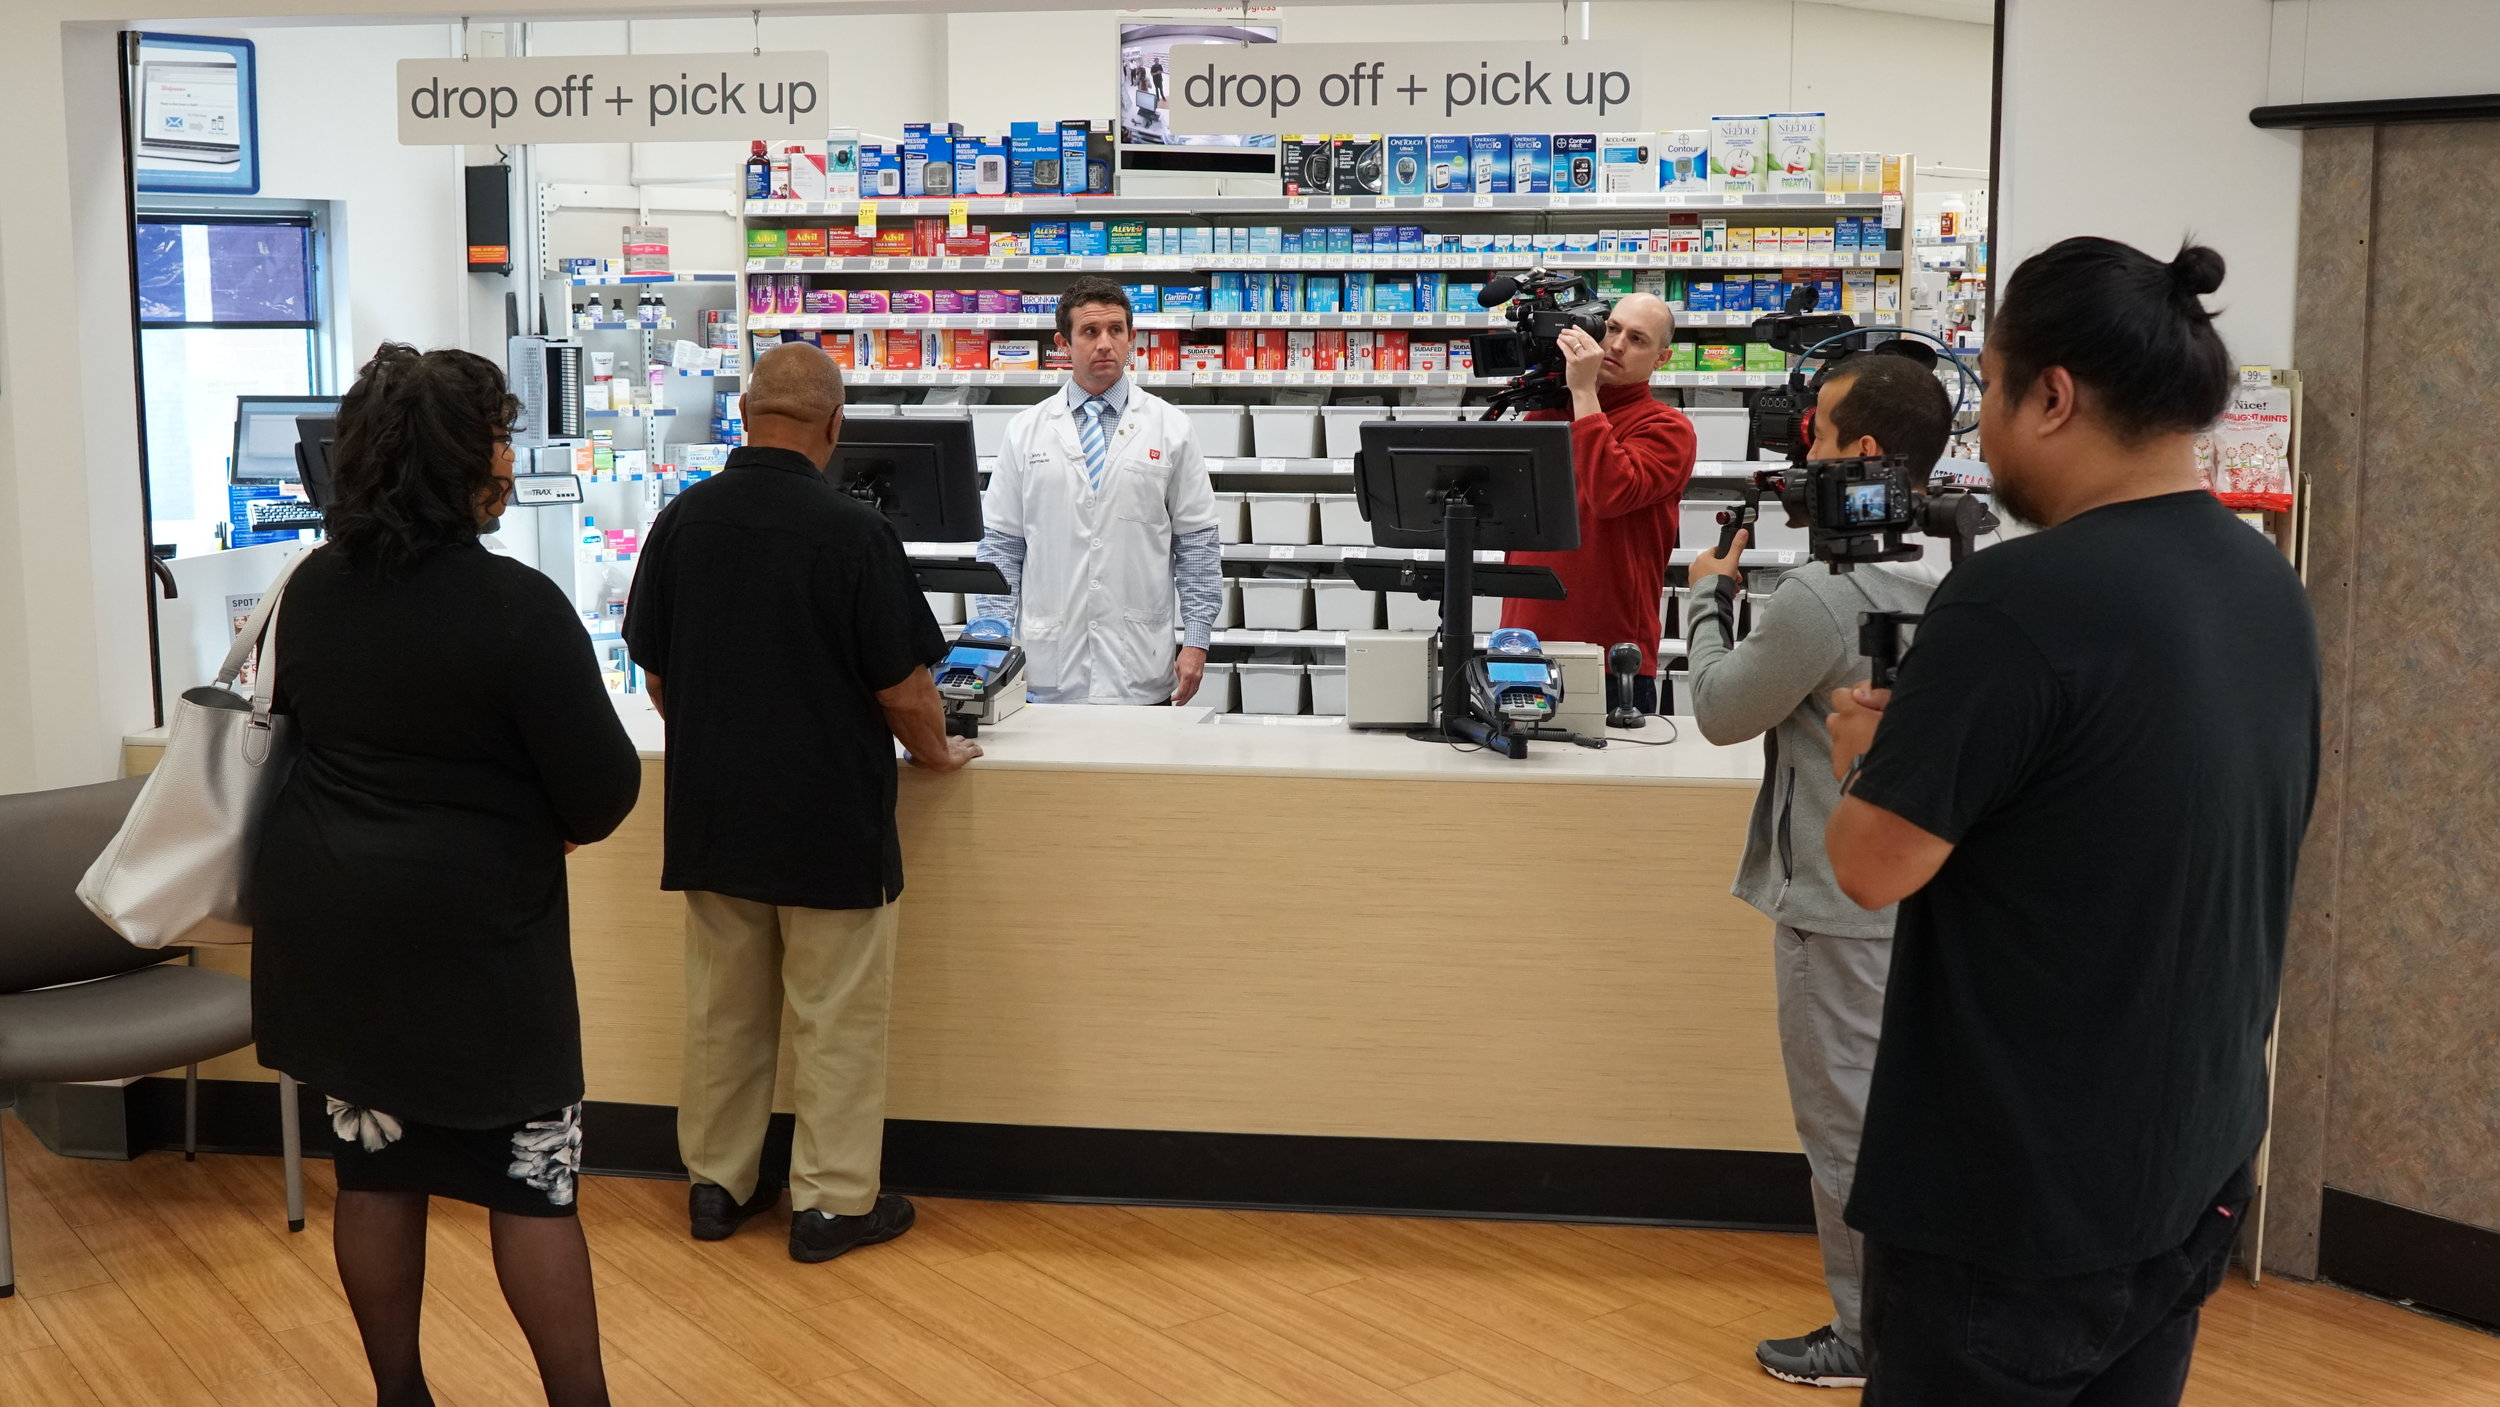 Lifetime Media crew on the set of scene 1 for real-time stroke simulation @ Walgreens Pharmacy w/ actor Mr. Lee as stroke victim.